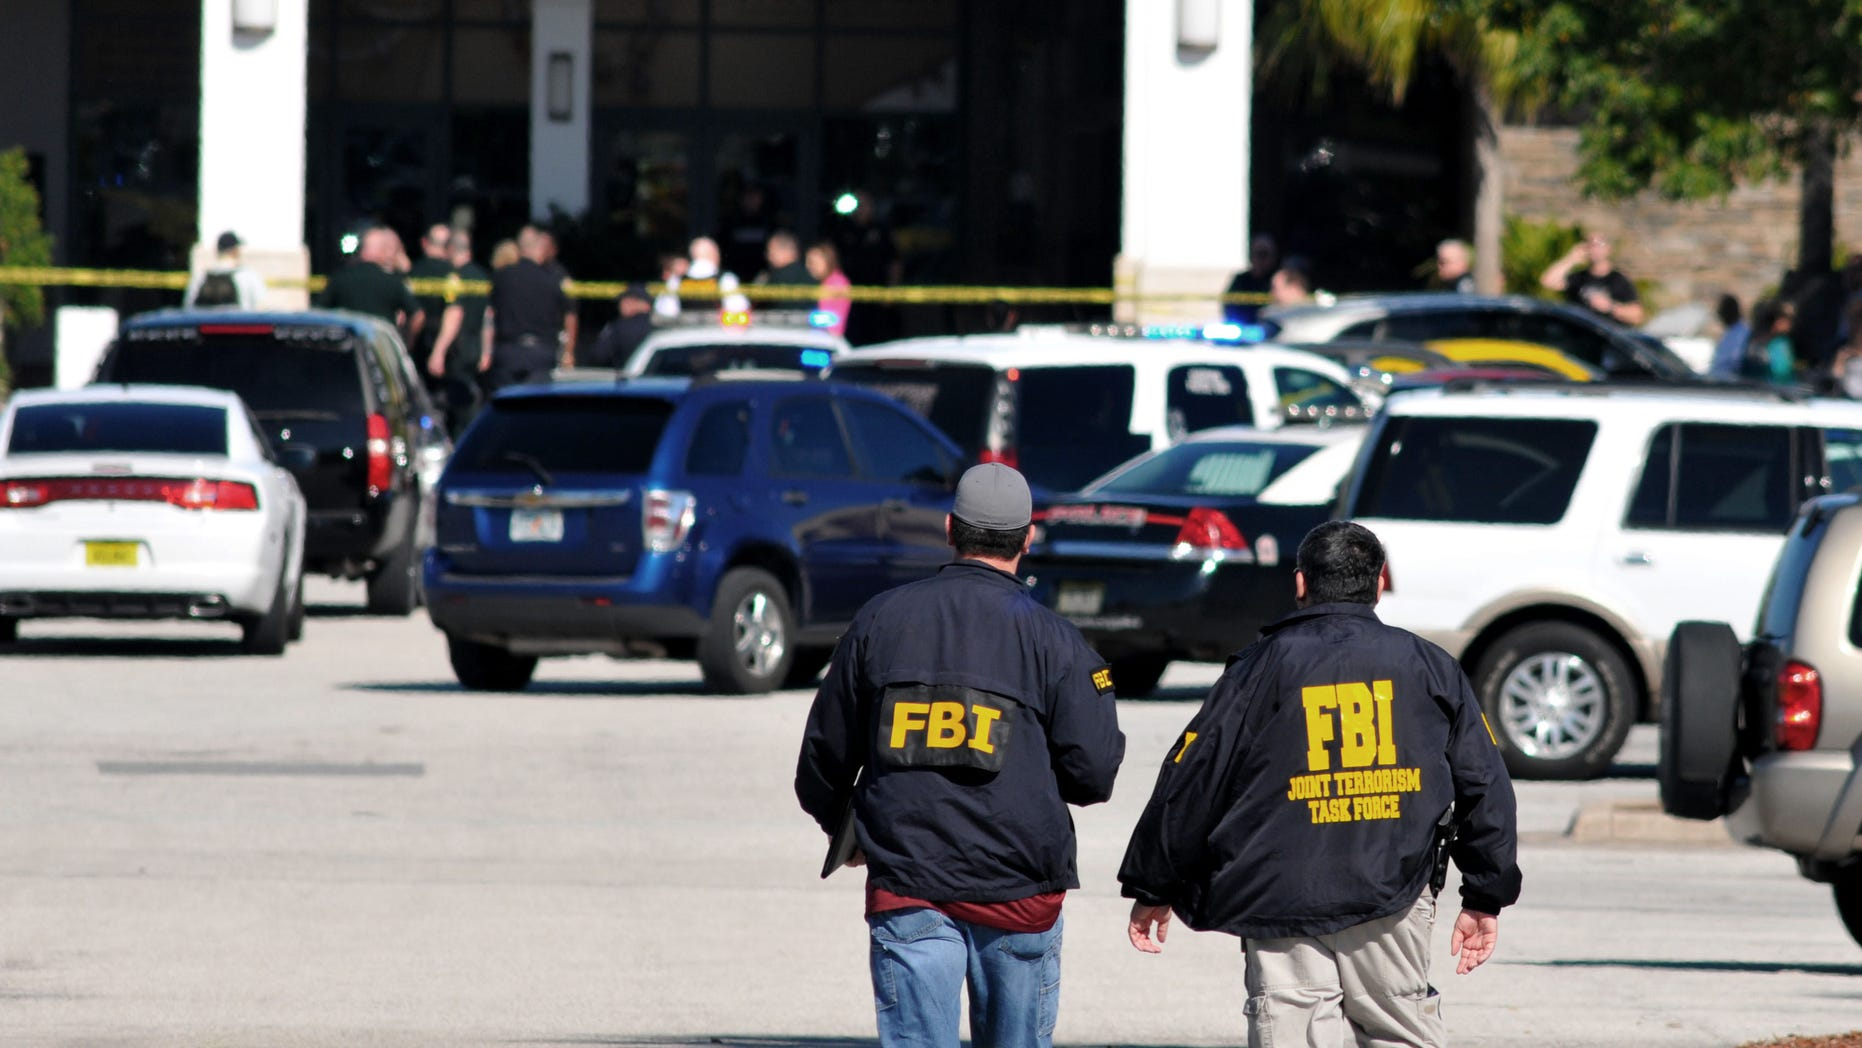 """Law enforcement including the FBI respond to the scene of a shooting at the Melbourne Square Mall on Saturday, Jan 17, 2015 in Melbourne, Fla. Melbourne Police have confirmed that the shooting Saturday morning at the mall has left two people dead and one injured from a gunshot wound. Police say the injured victim is hospitalized in stable condition and cooperating with investigators. After responding to reports around 9:30 a.m. of multiple shots fired inside the mall, police tweeted that the """"shooter is contained."""" (AP Photo/Florida Today, Malcolm Denemark)  NO SALES"""